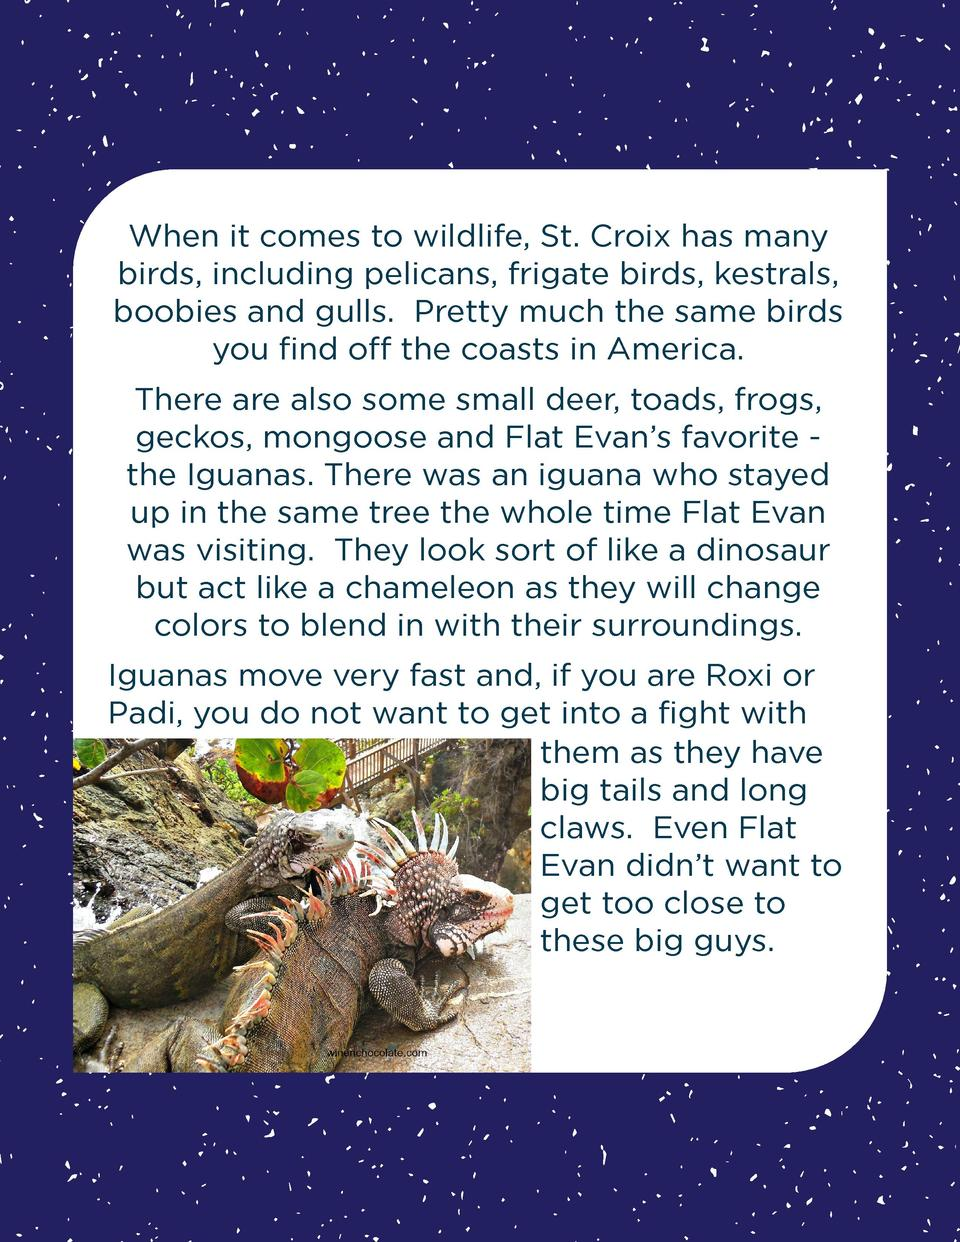 When it comes to wildlife, St. Croix has many birds, including pelicans, frigate birds, kestrals, boobies and gulls. Prett...